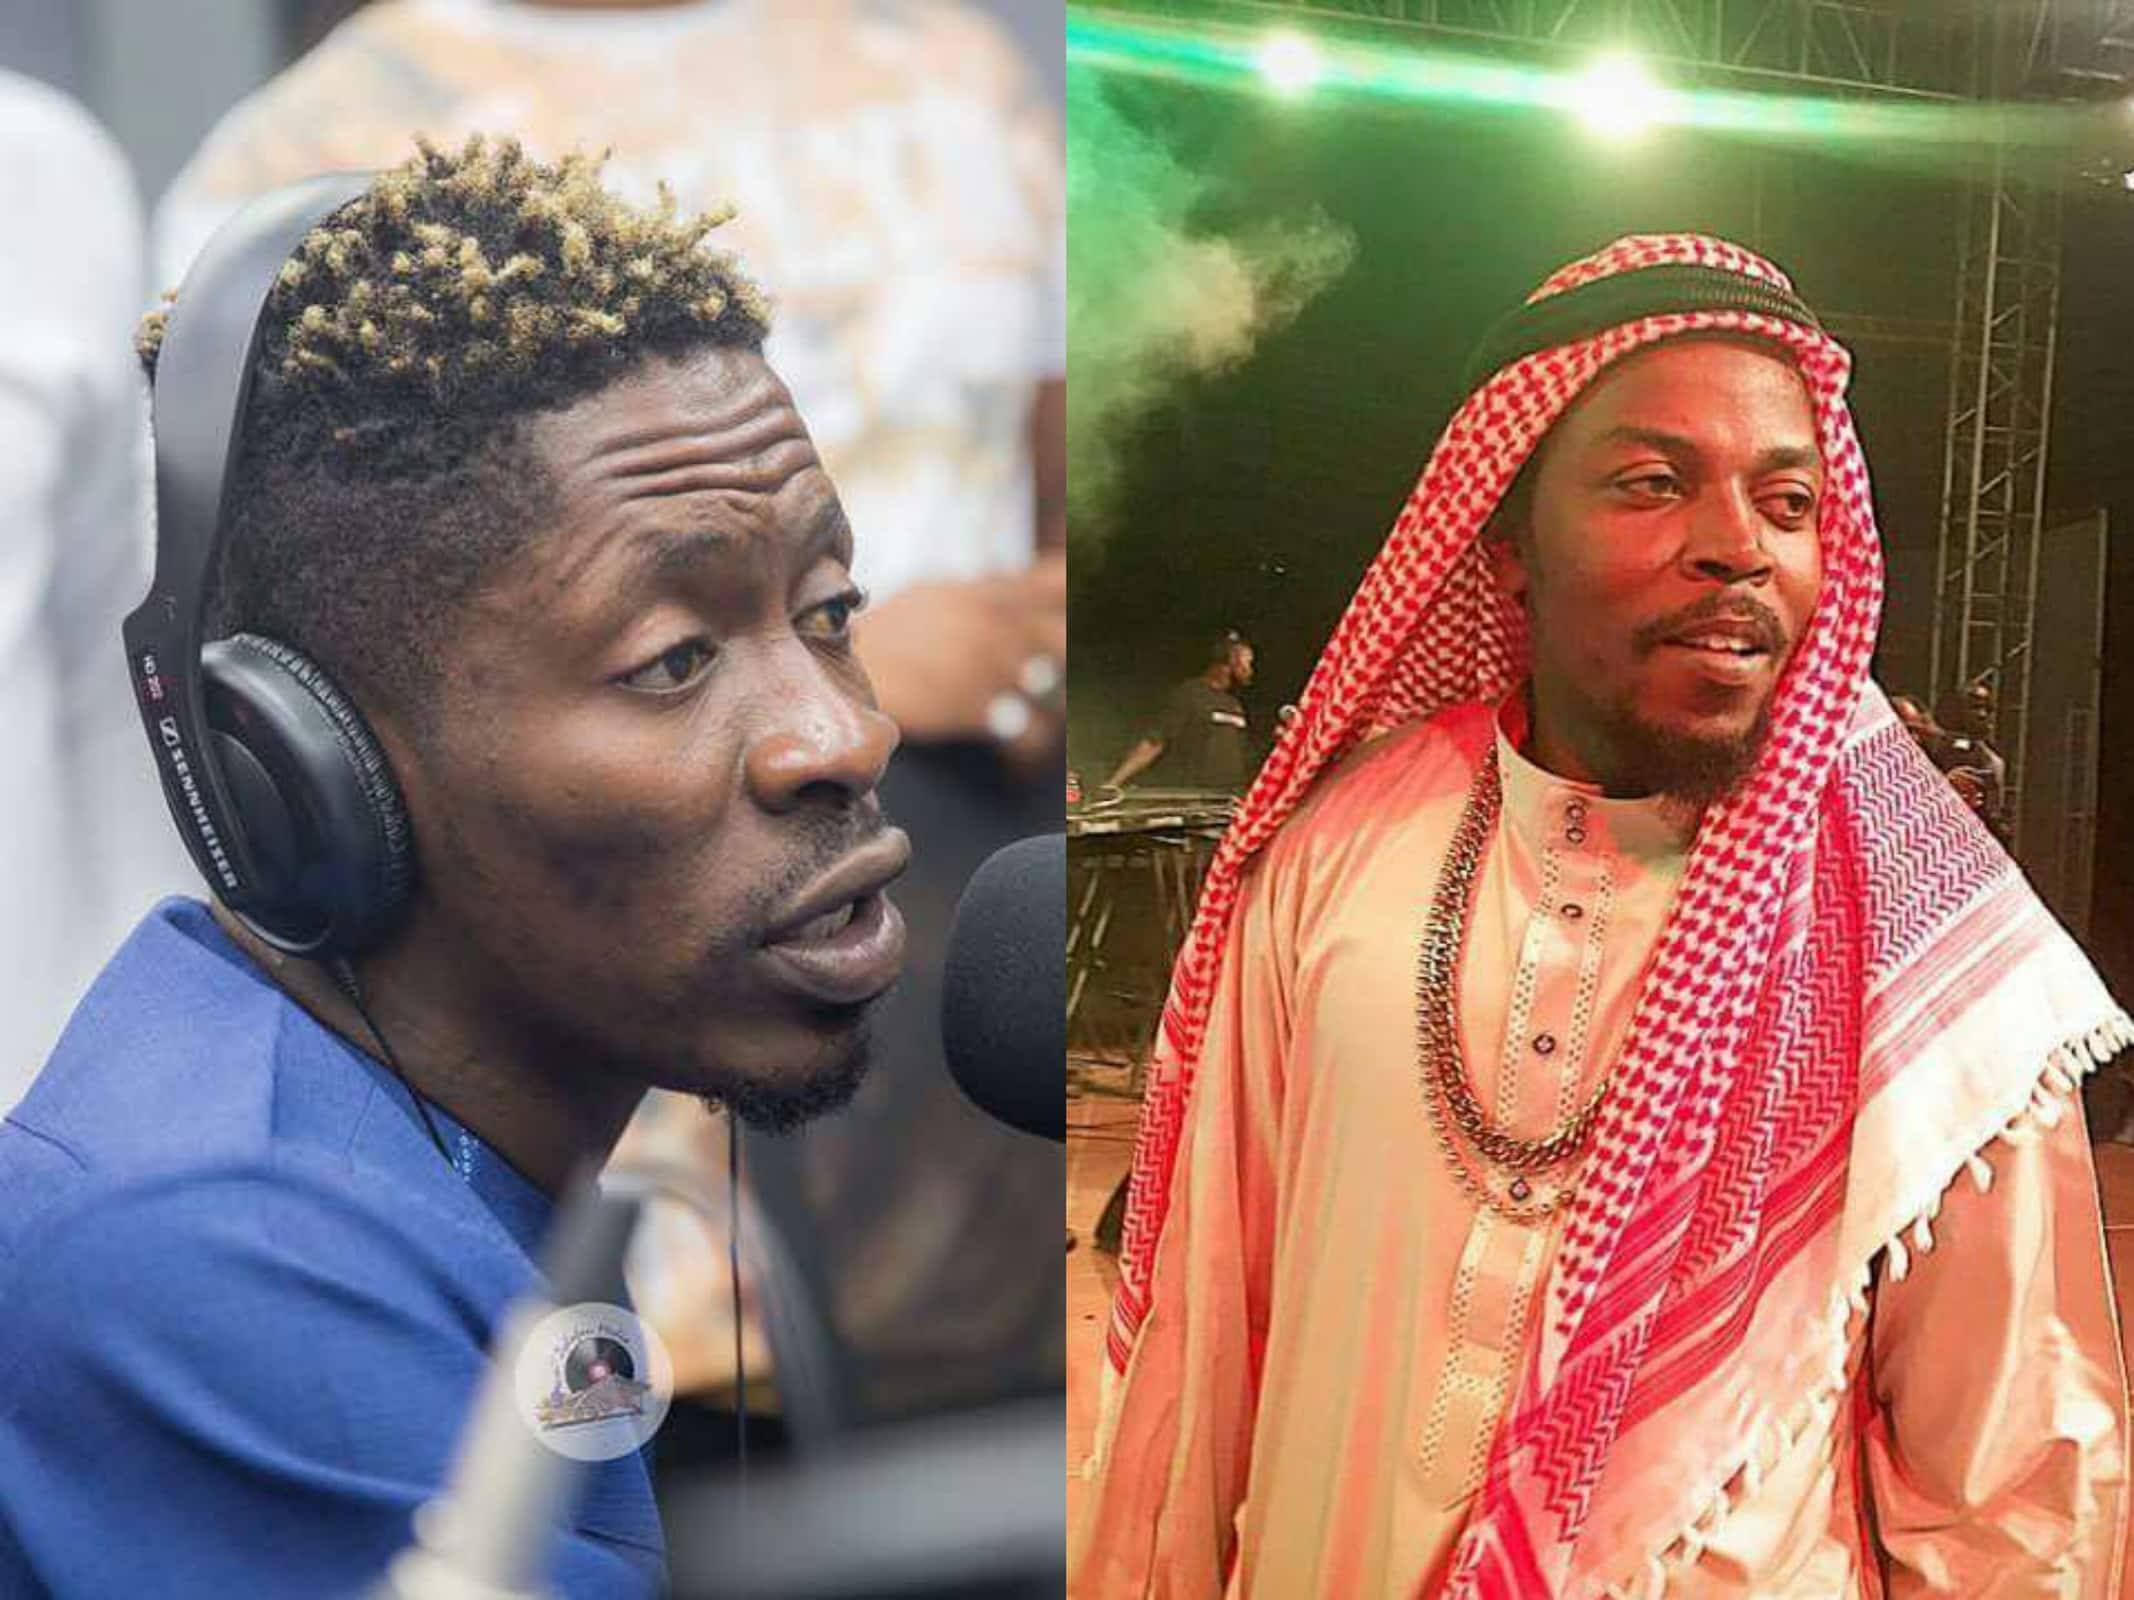 Stop giving your wife for loan - Kwaw Kese to Shatta Wale